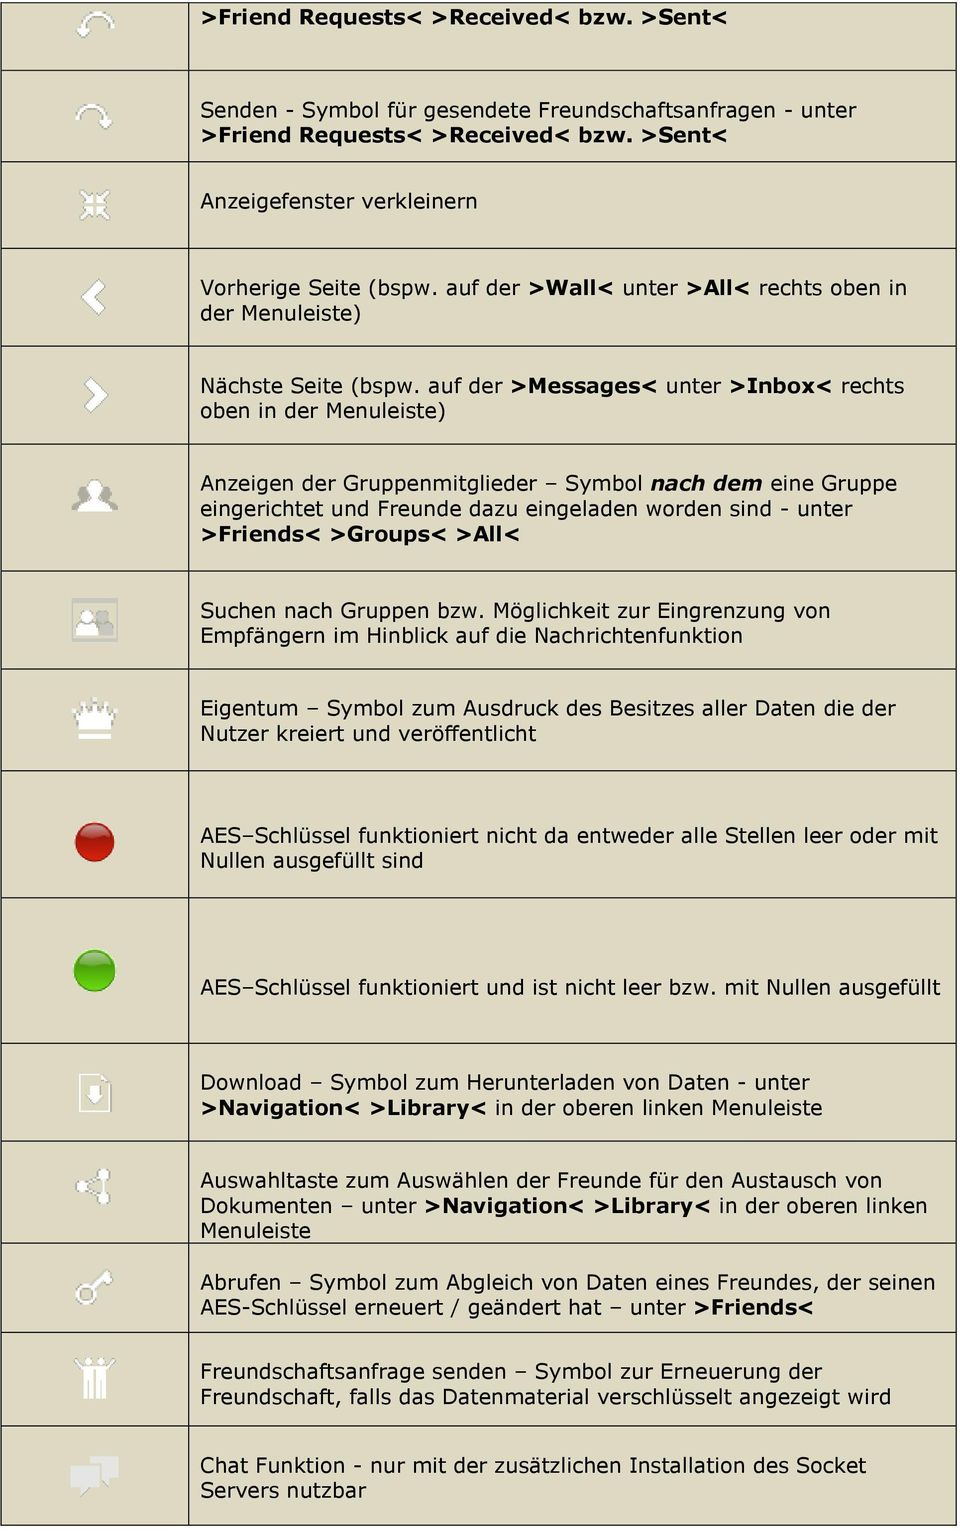 auf der >Messages< unter >Inbox< rechts oben in der Menuleiste) Anzeigen der Gruppenmitglieder Symbol nach dem eine Gruppe eingerichtet und Freunde dazu eingeladen worden sind - unter >Friends<